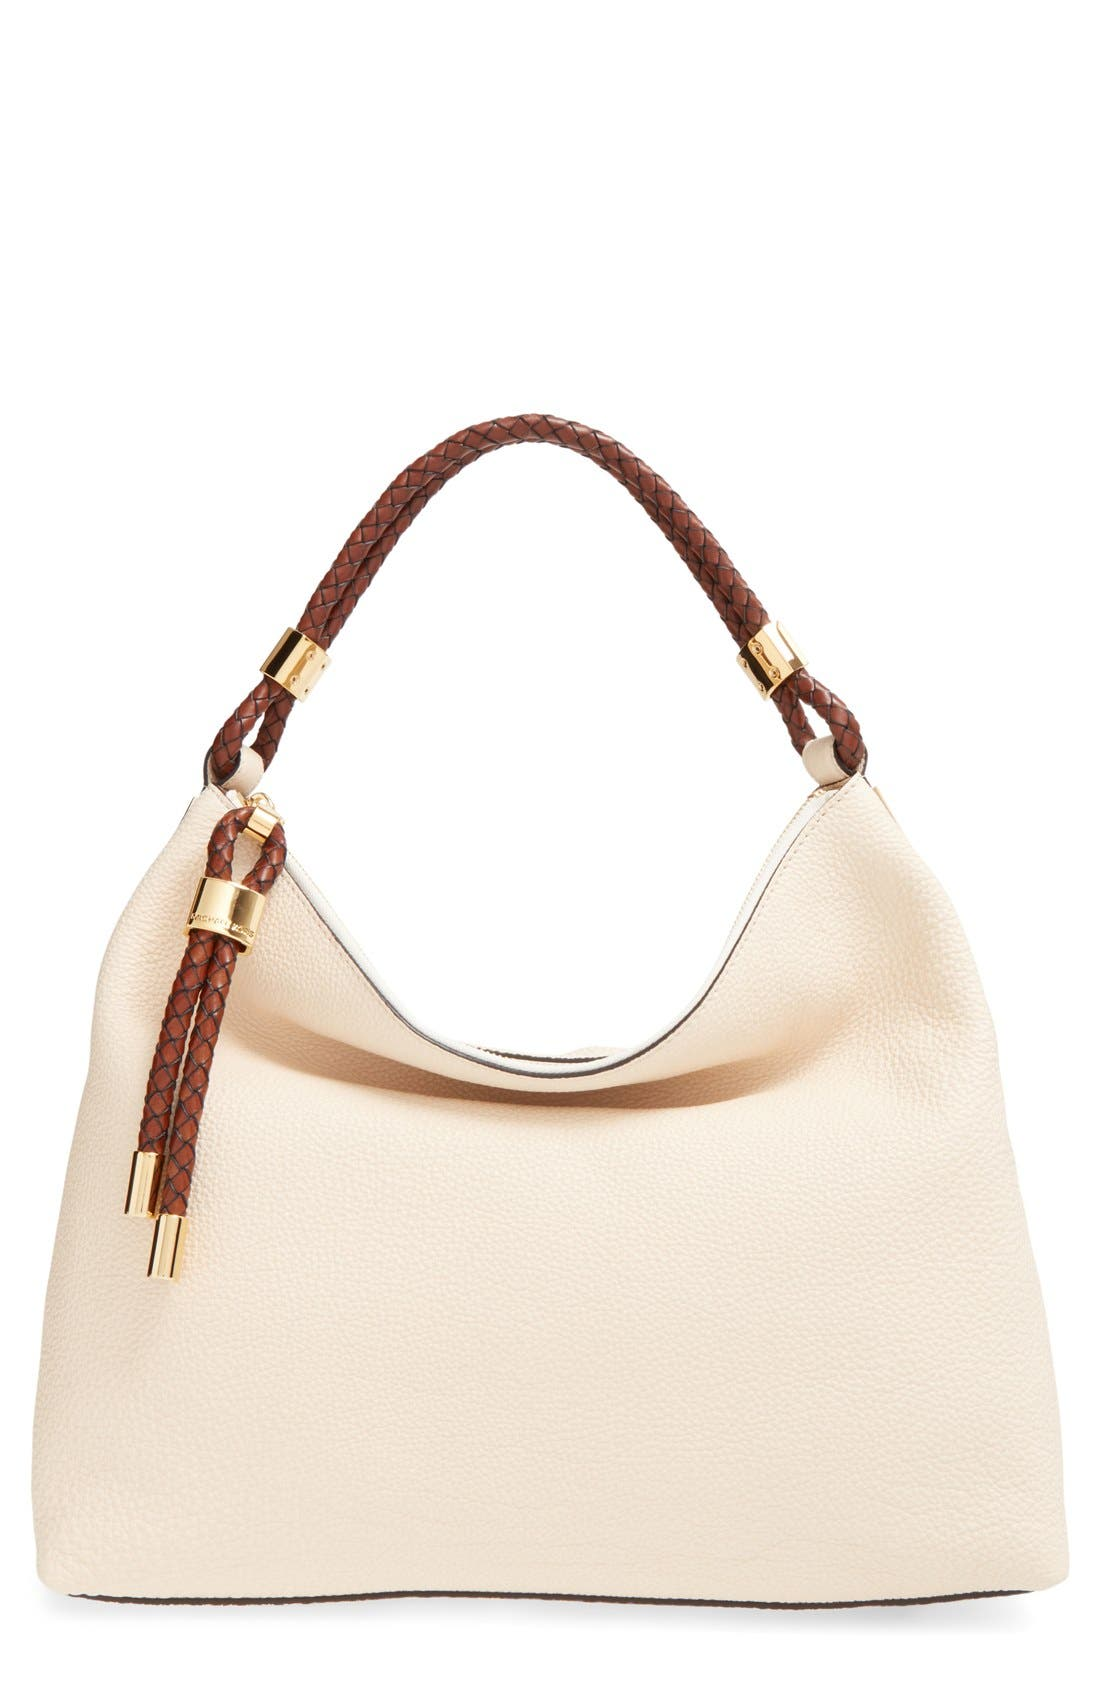 'Large Skorpios' Leather Hobo,                             Main thumbnail 1, color,                             100